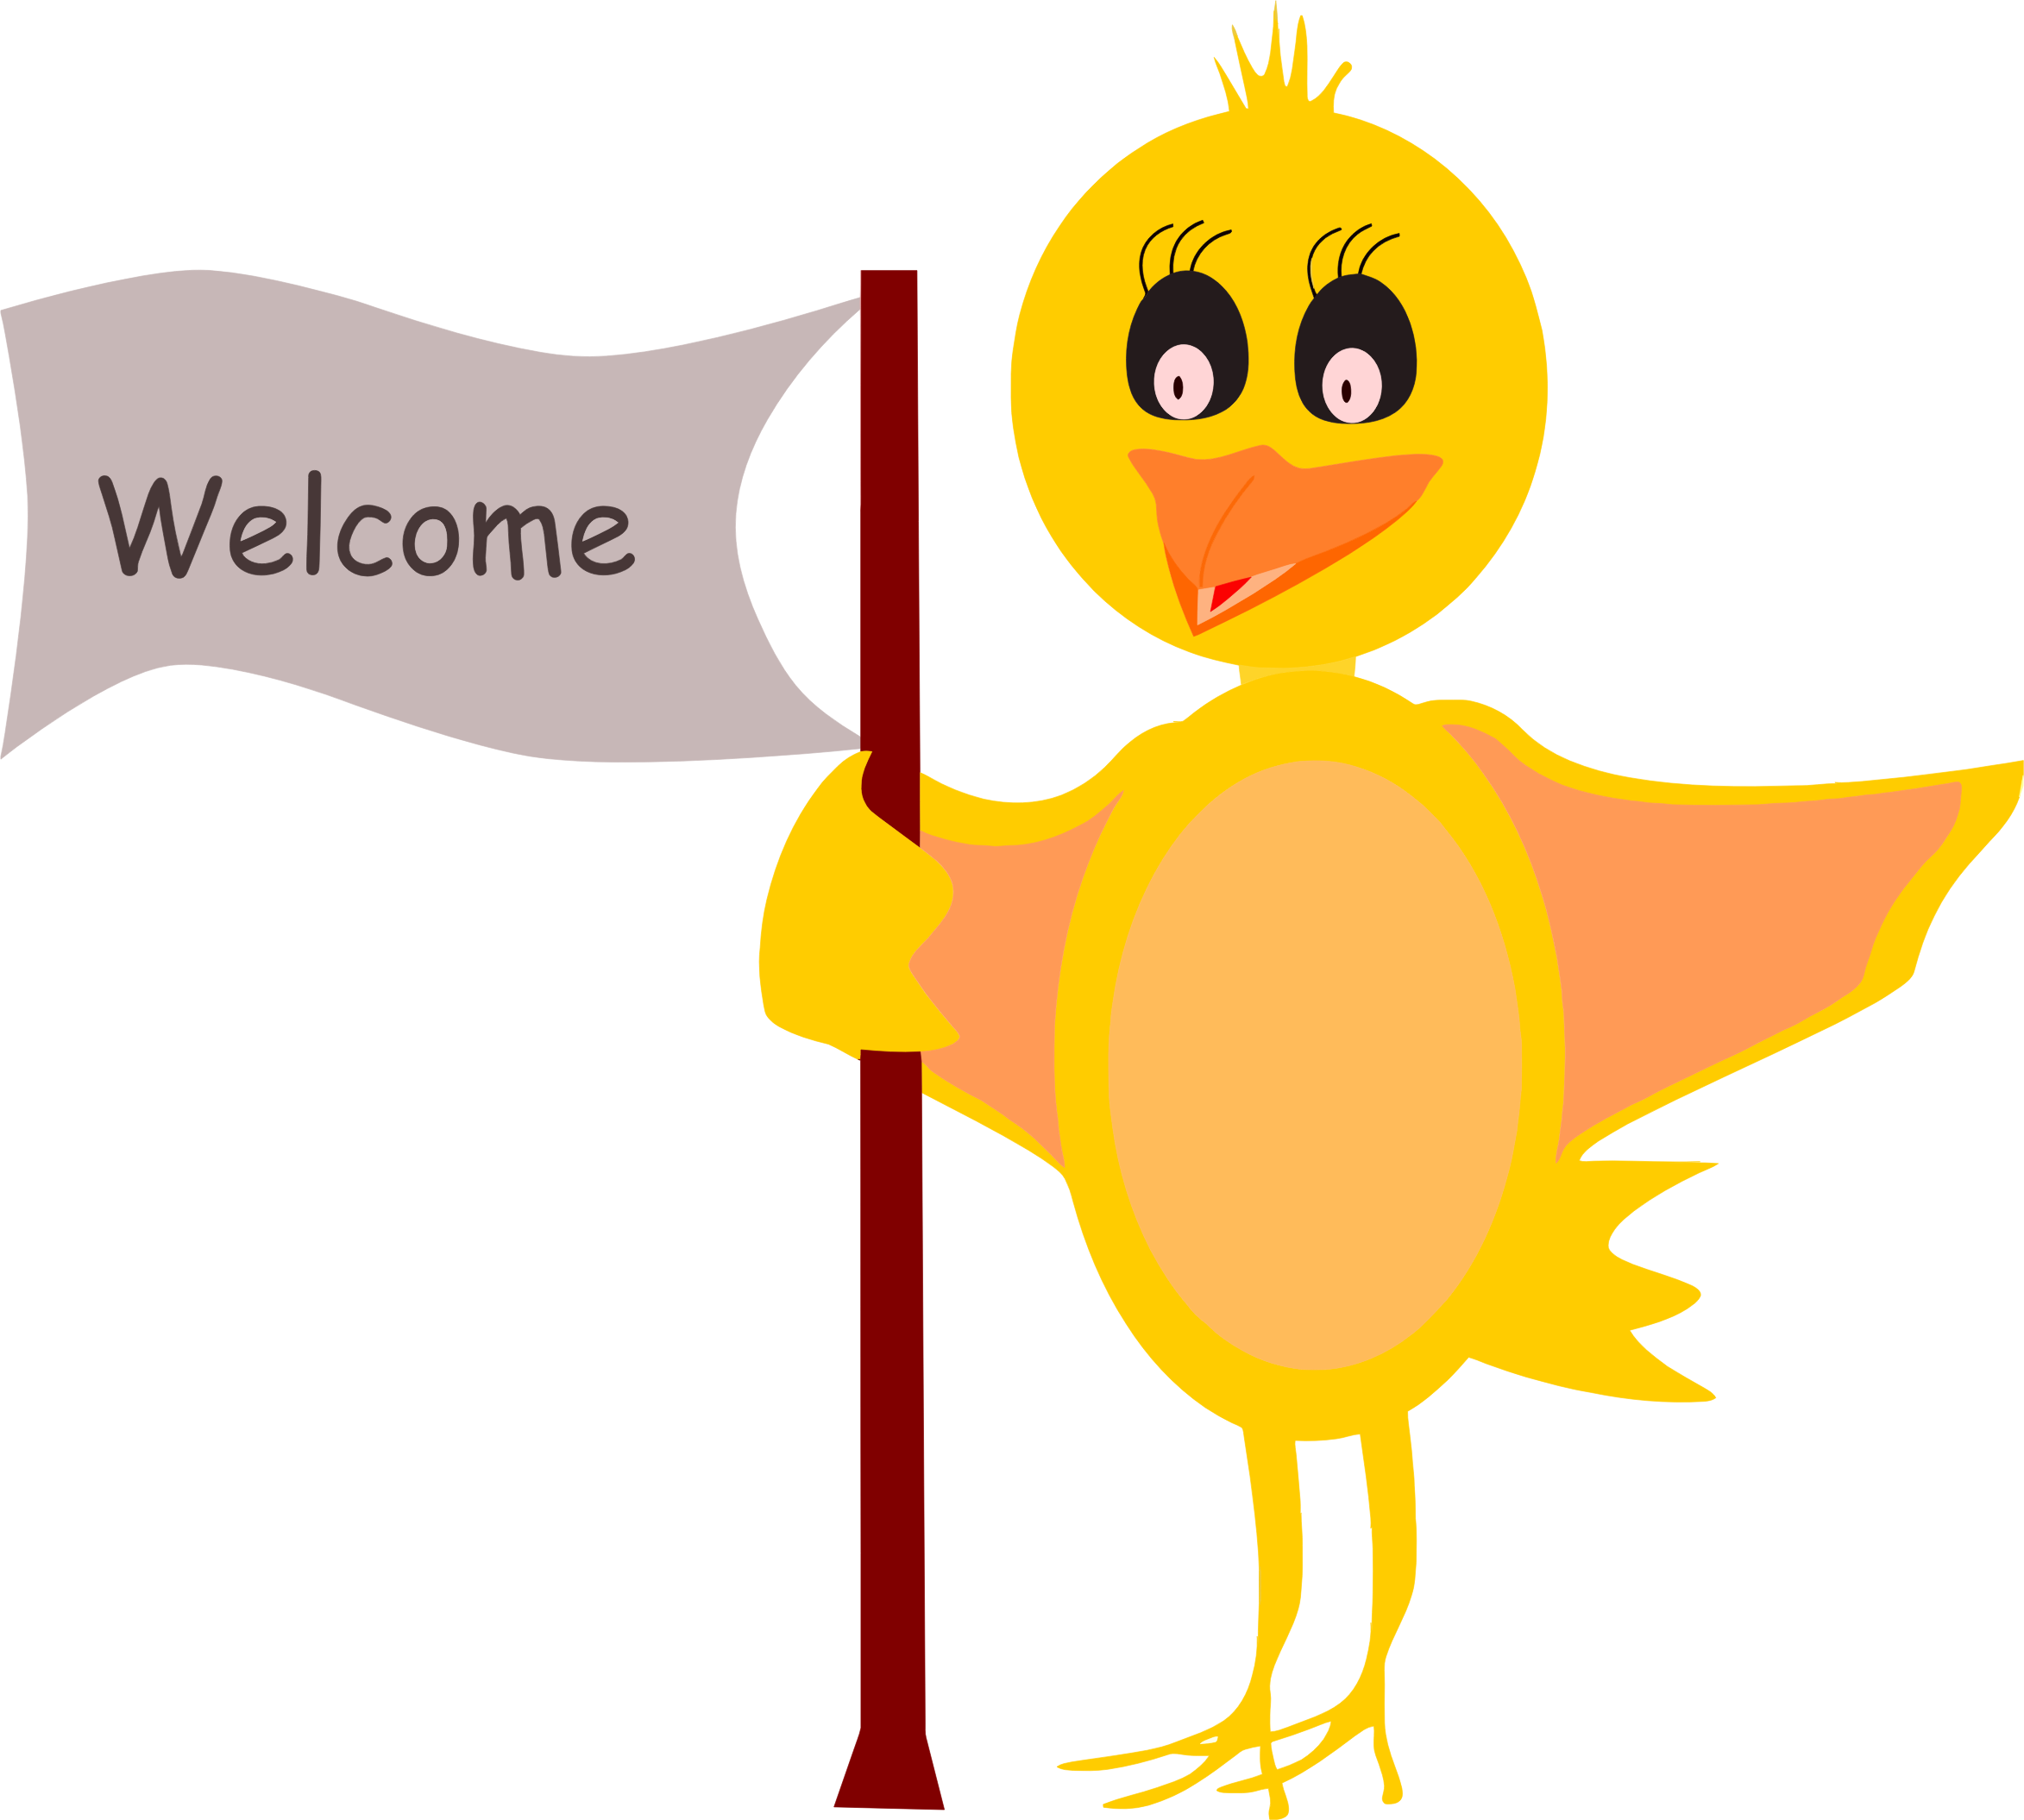 Welcome to sign png. Cartoon bird with icons